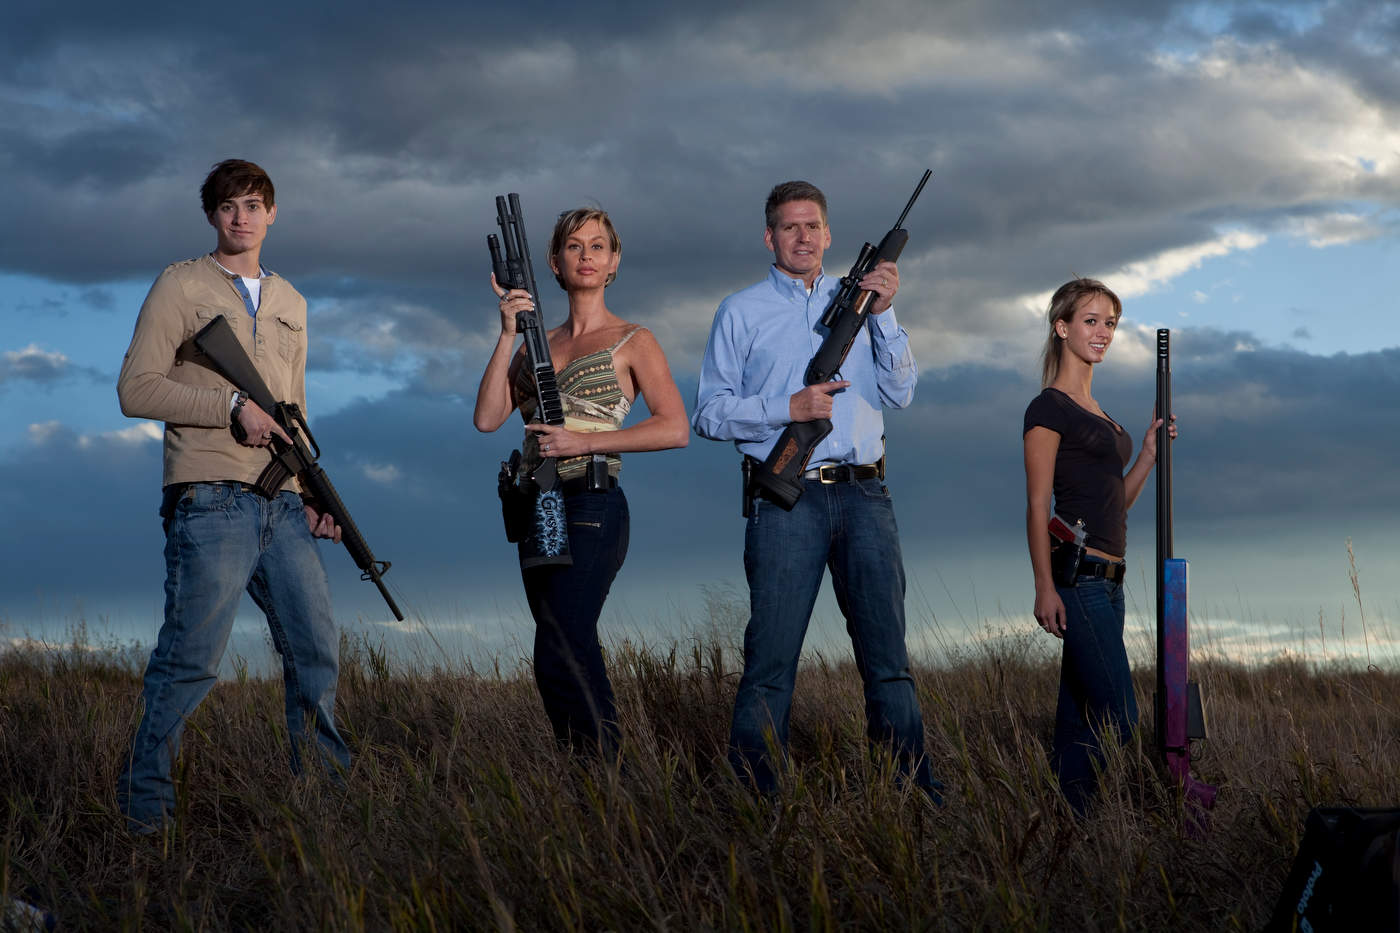 The Wyatt family, American Gun, Colorado, for Discovery Channel.